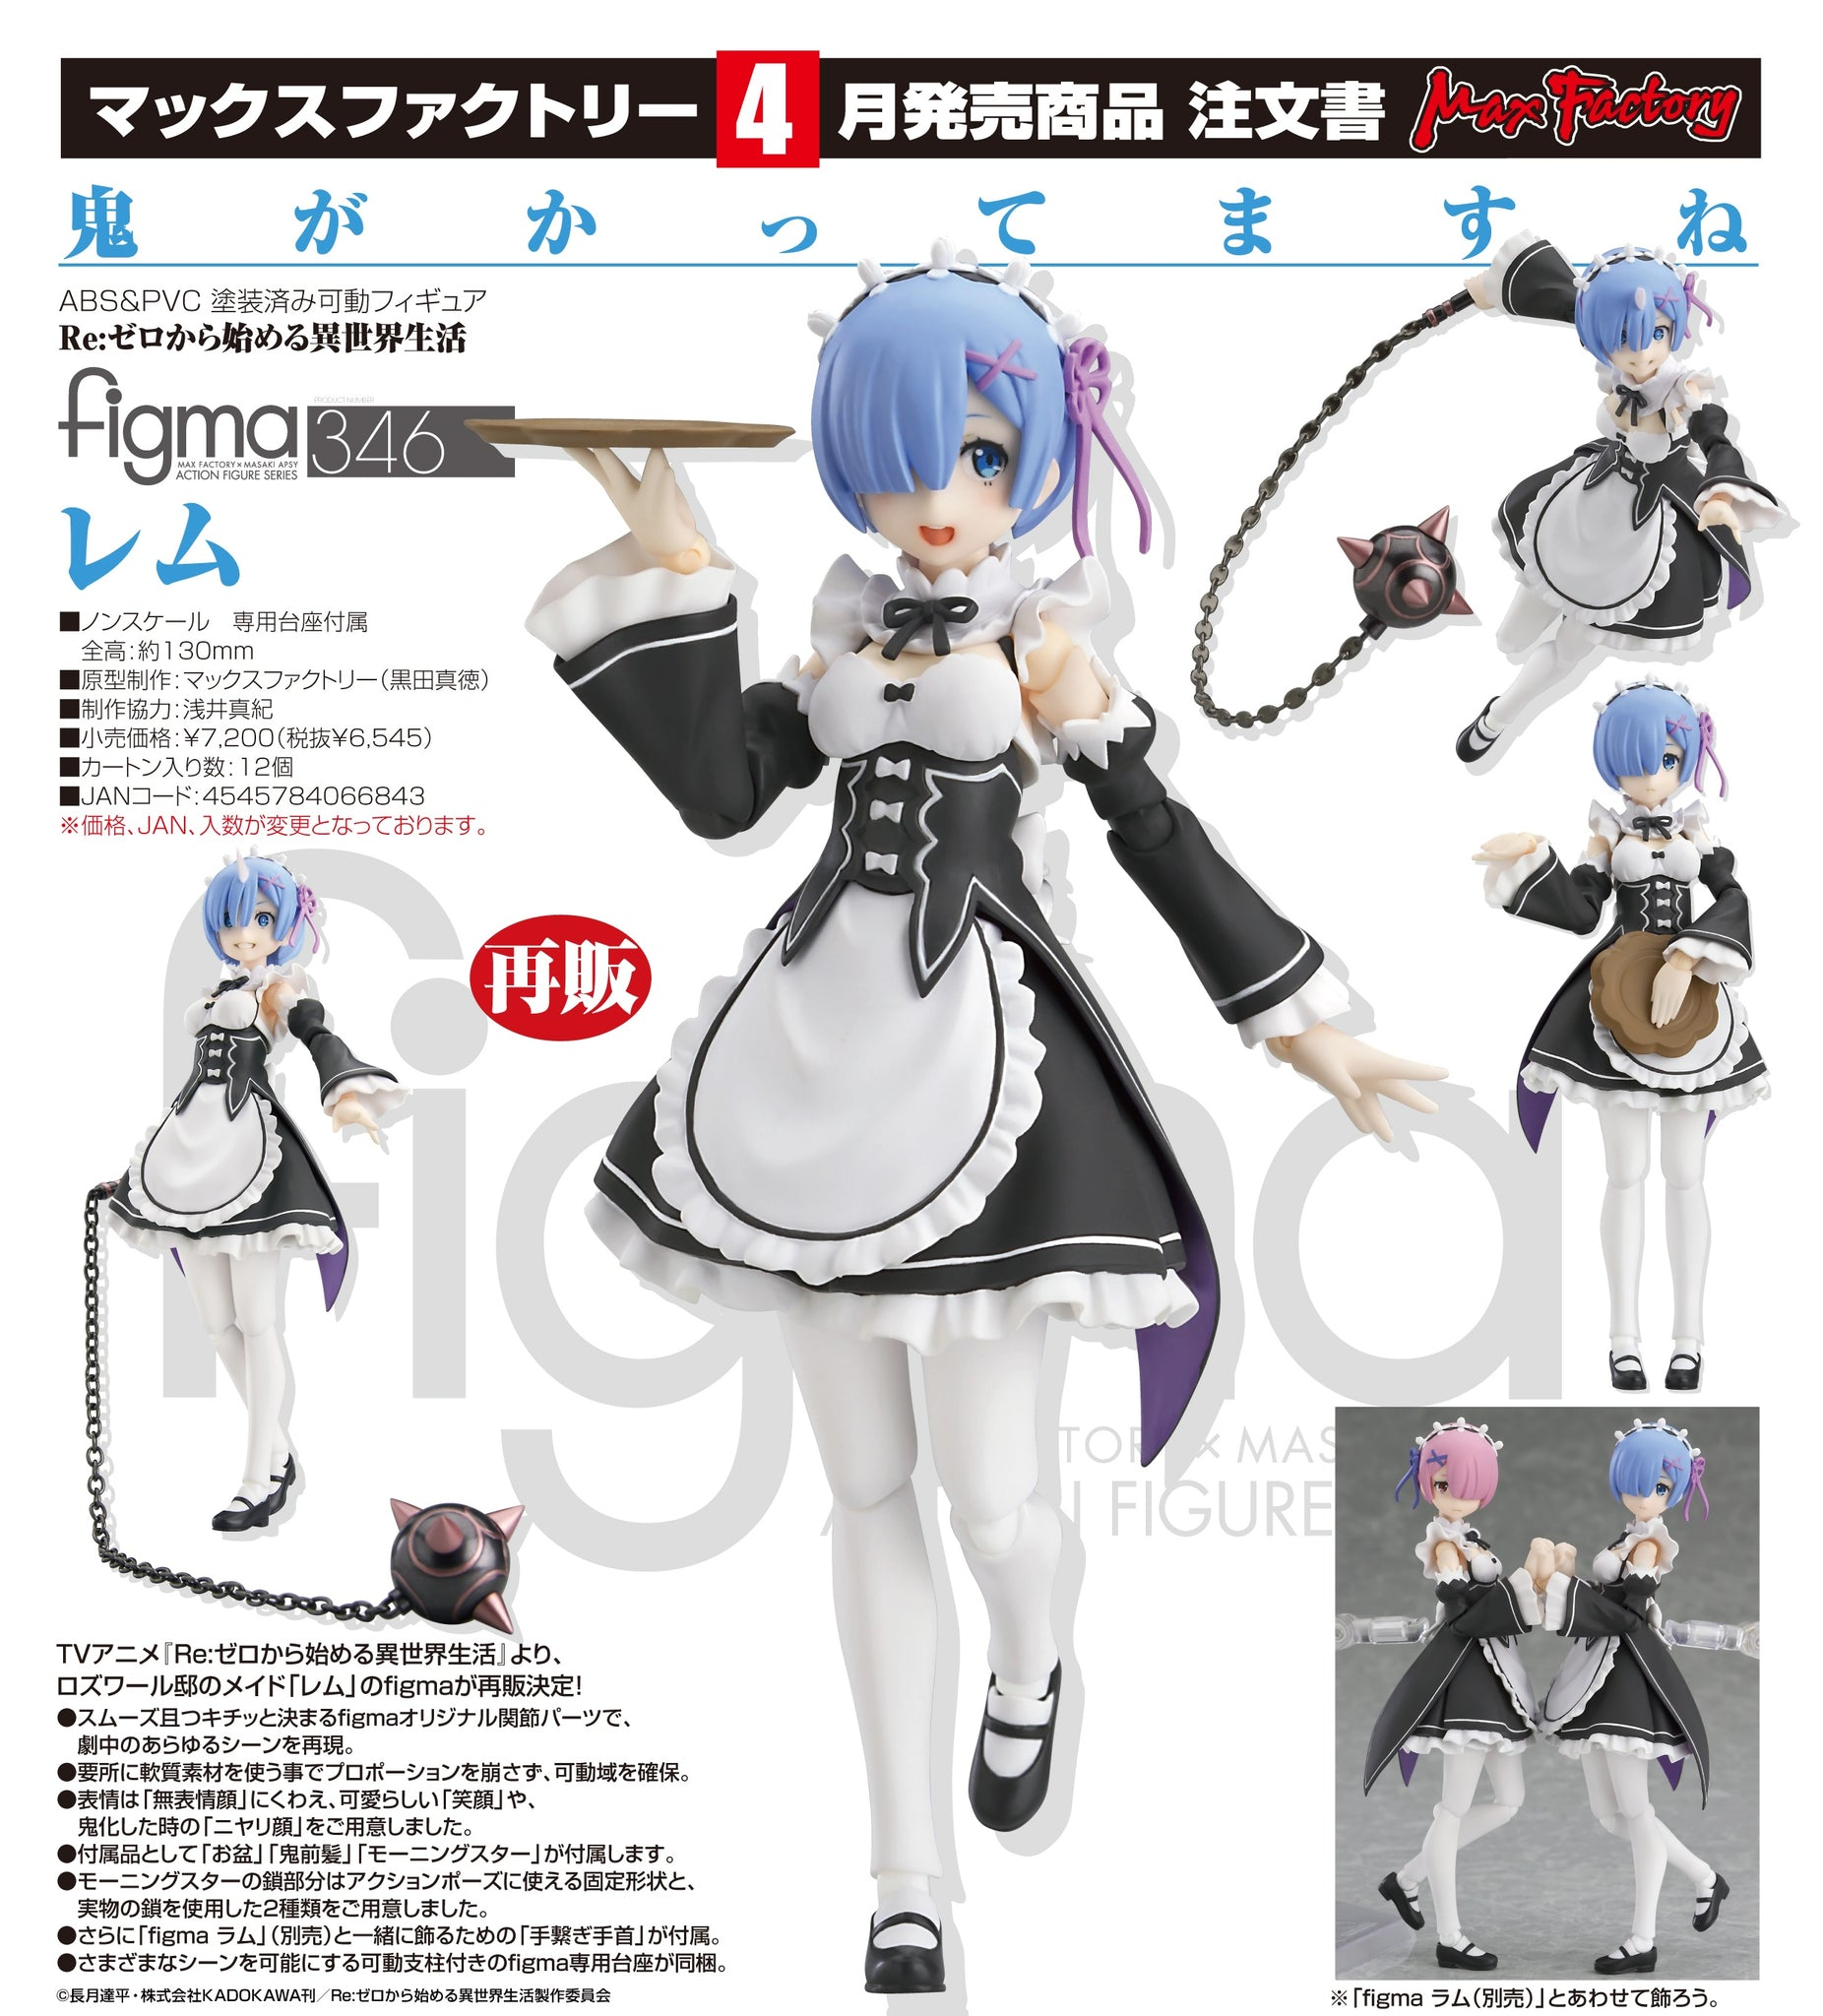 【預訂日期至04-Sep-20】Max Factory figma no.346 figma Rem Action Figure (再販)